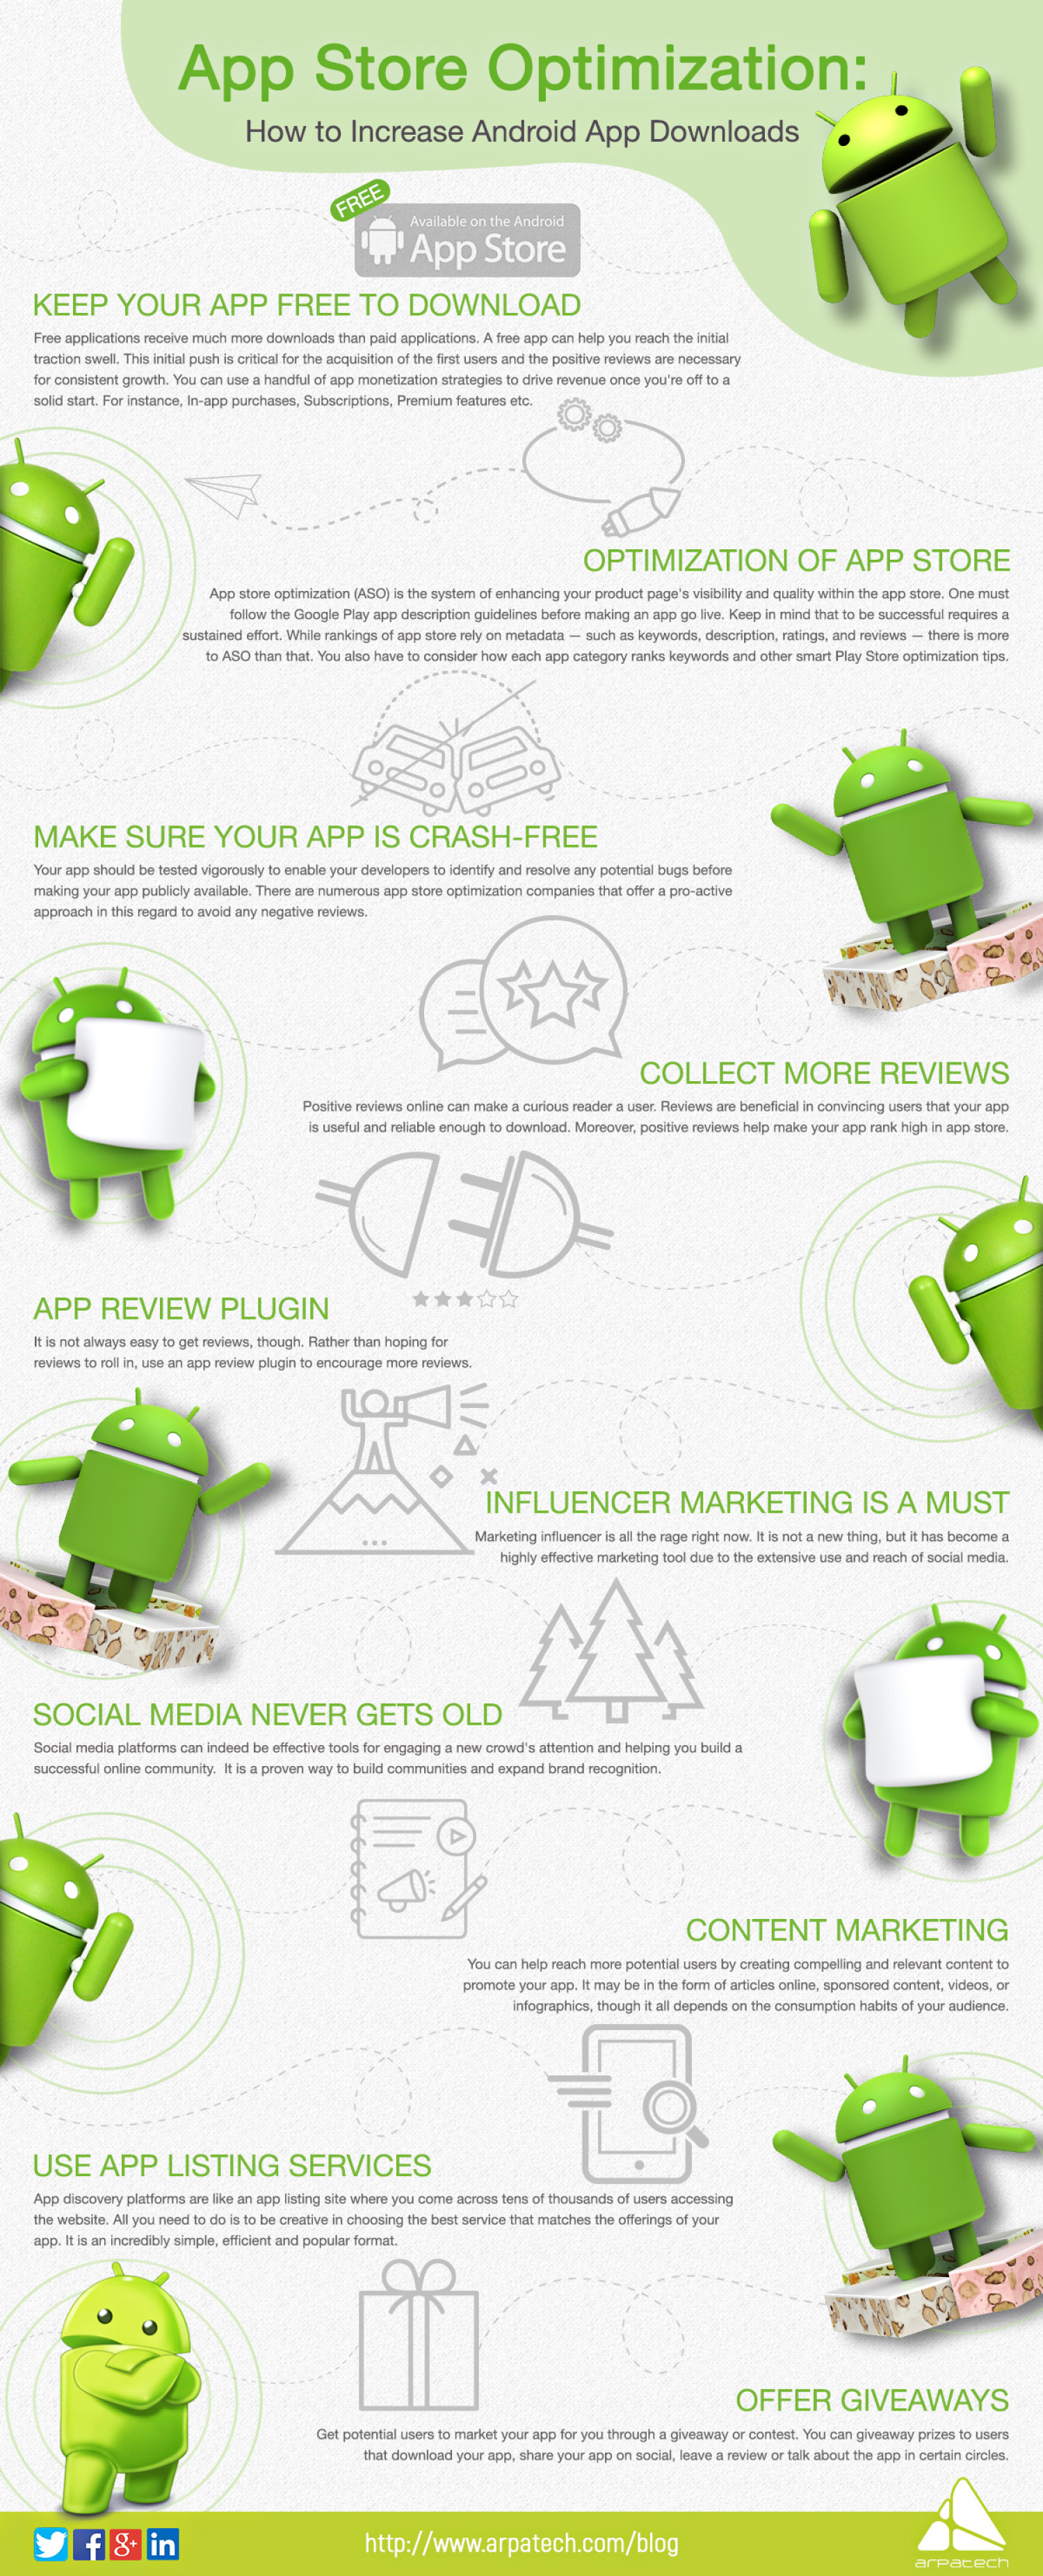 App Store Optimization: How To Increase Android App Downloads Infographic